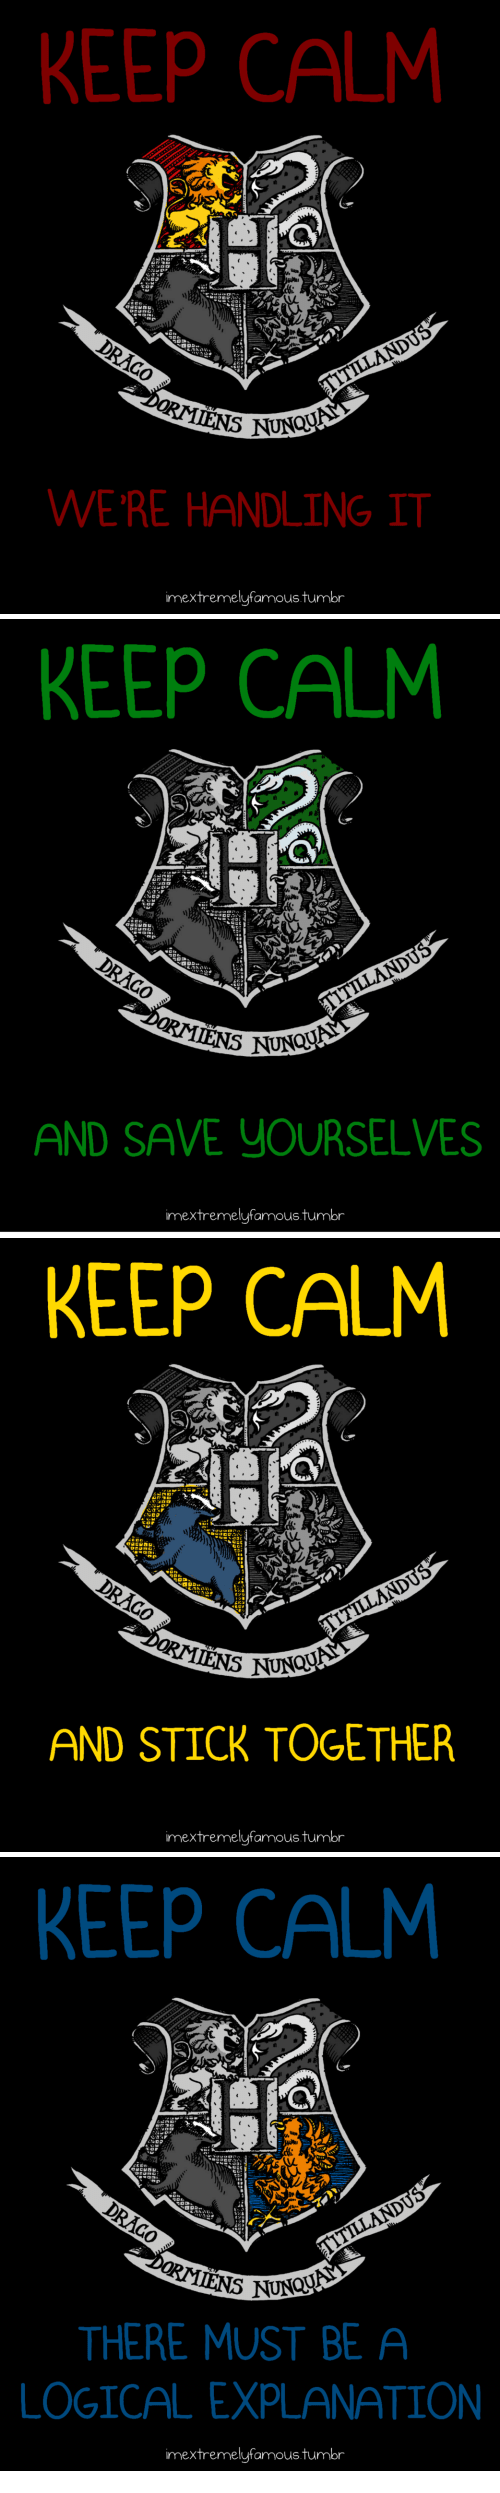 Stick Together: EEP CALM  WERE HANDLING IT  imextremelufamous tumbr   KEEP CALM  AND SAVE YOURSELVES  imextremelufamous.tumbr   KEEP CALM  AND STICK TOGETHER  imextremelufamoustumbr   KEEP CALM  THERE MUST BE A  LOGICAL EXPLANATION  imextremelufamous tumbr